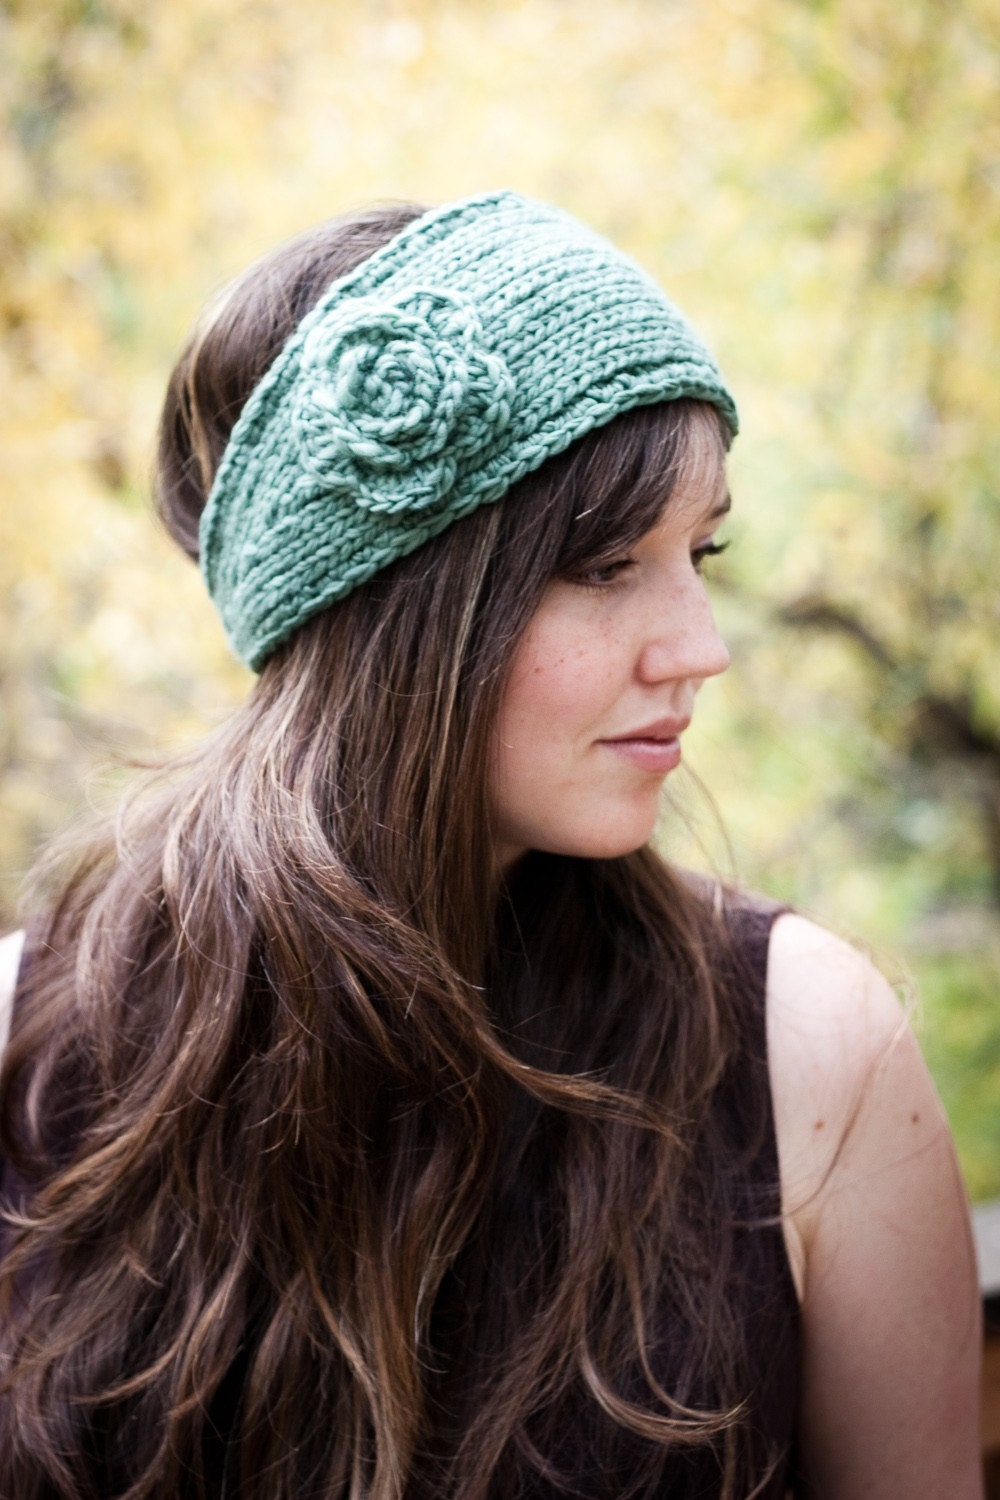 Knitting Headband Pattern Free : PATTERN Flower Headband Earwarmer Knit and Crochet Pattern